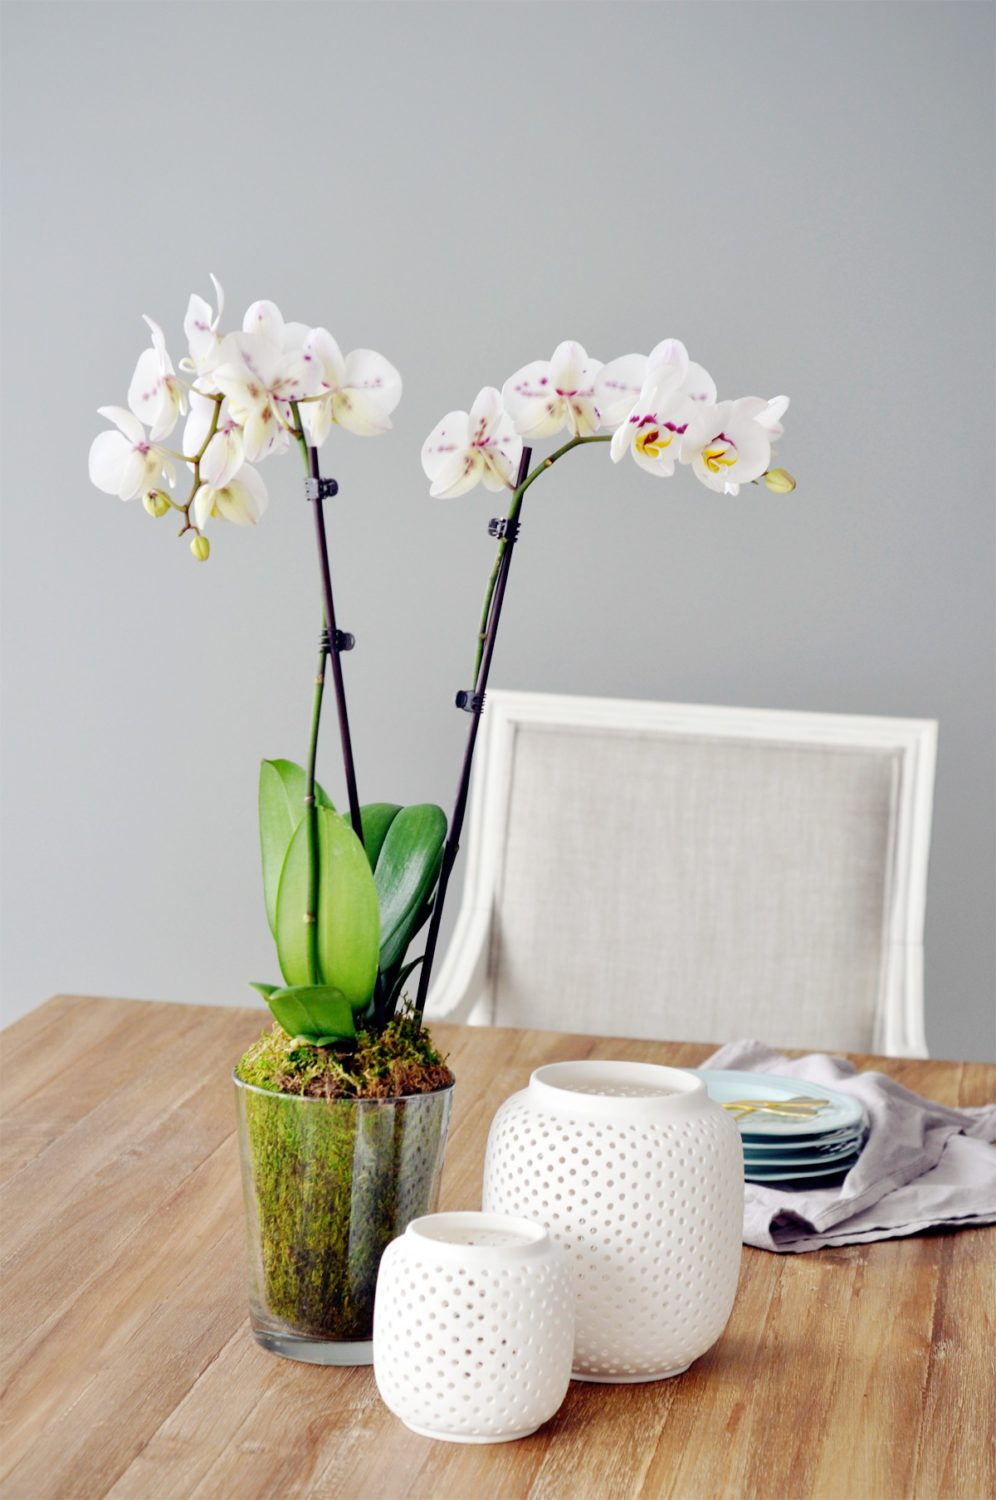 1 - Potted Orchid